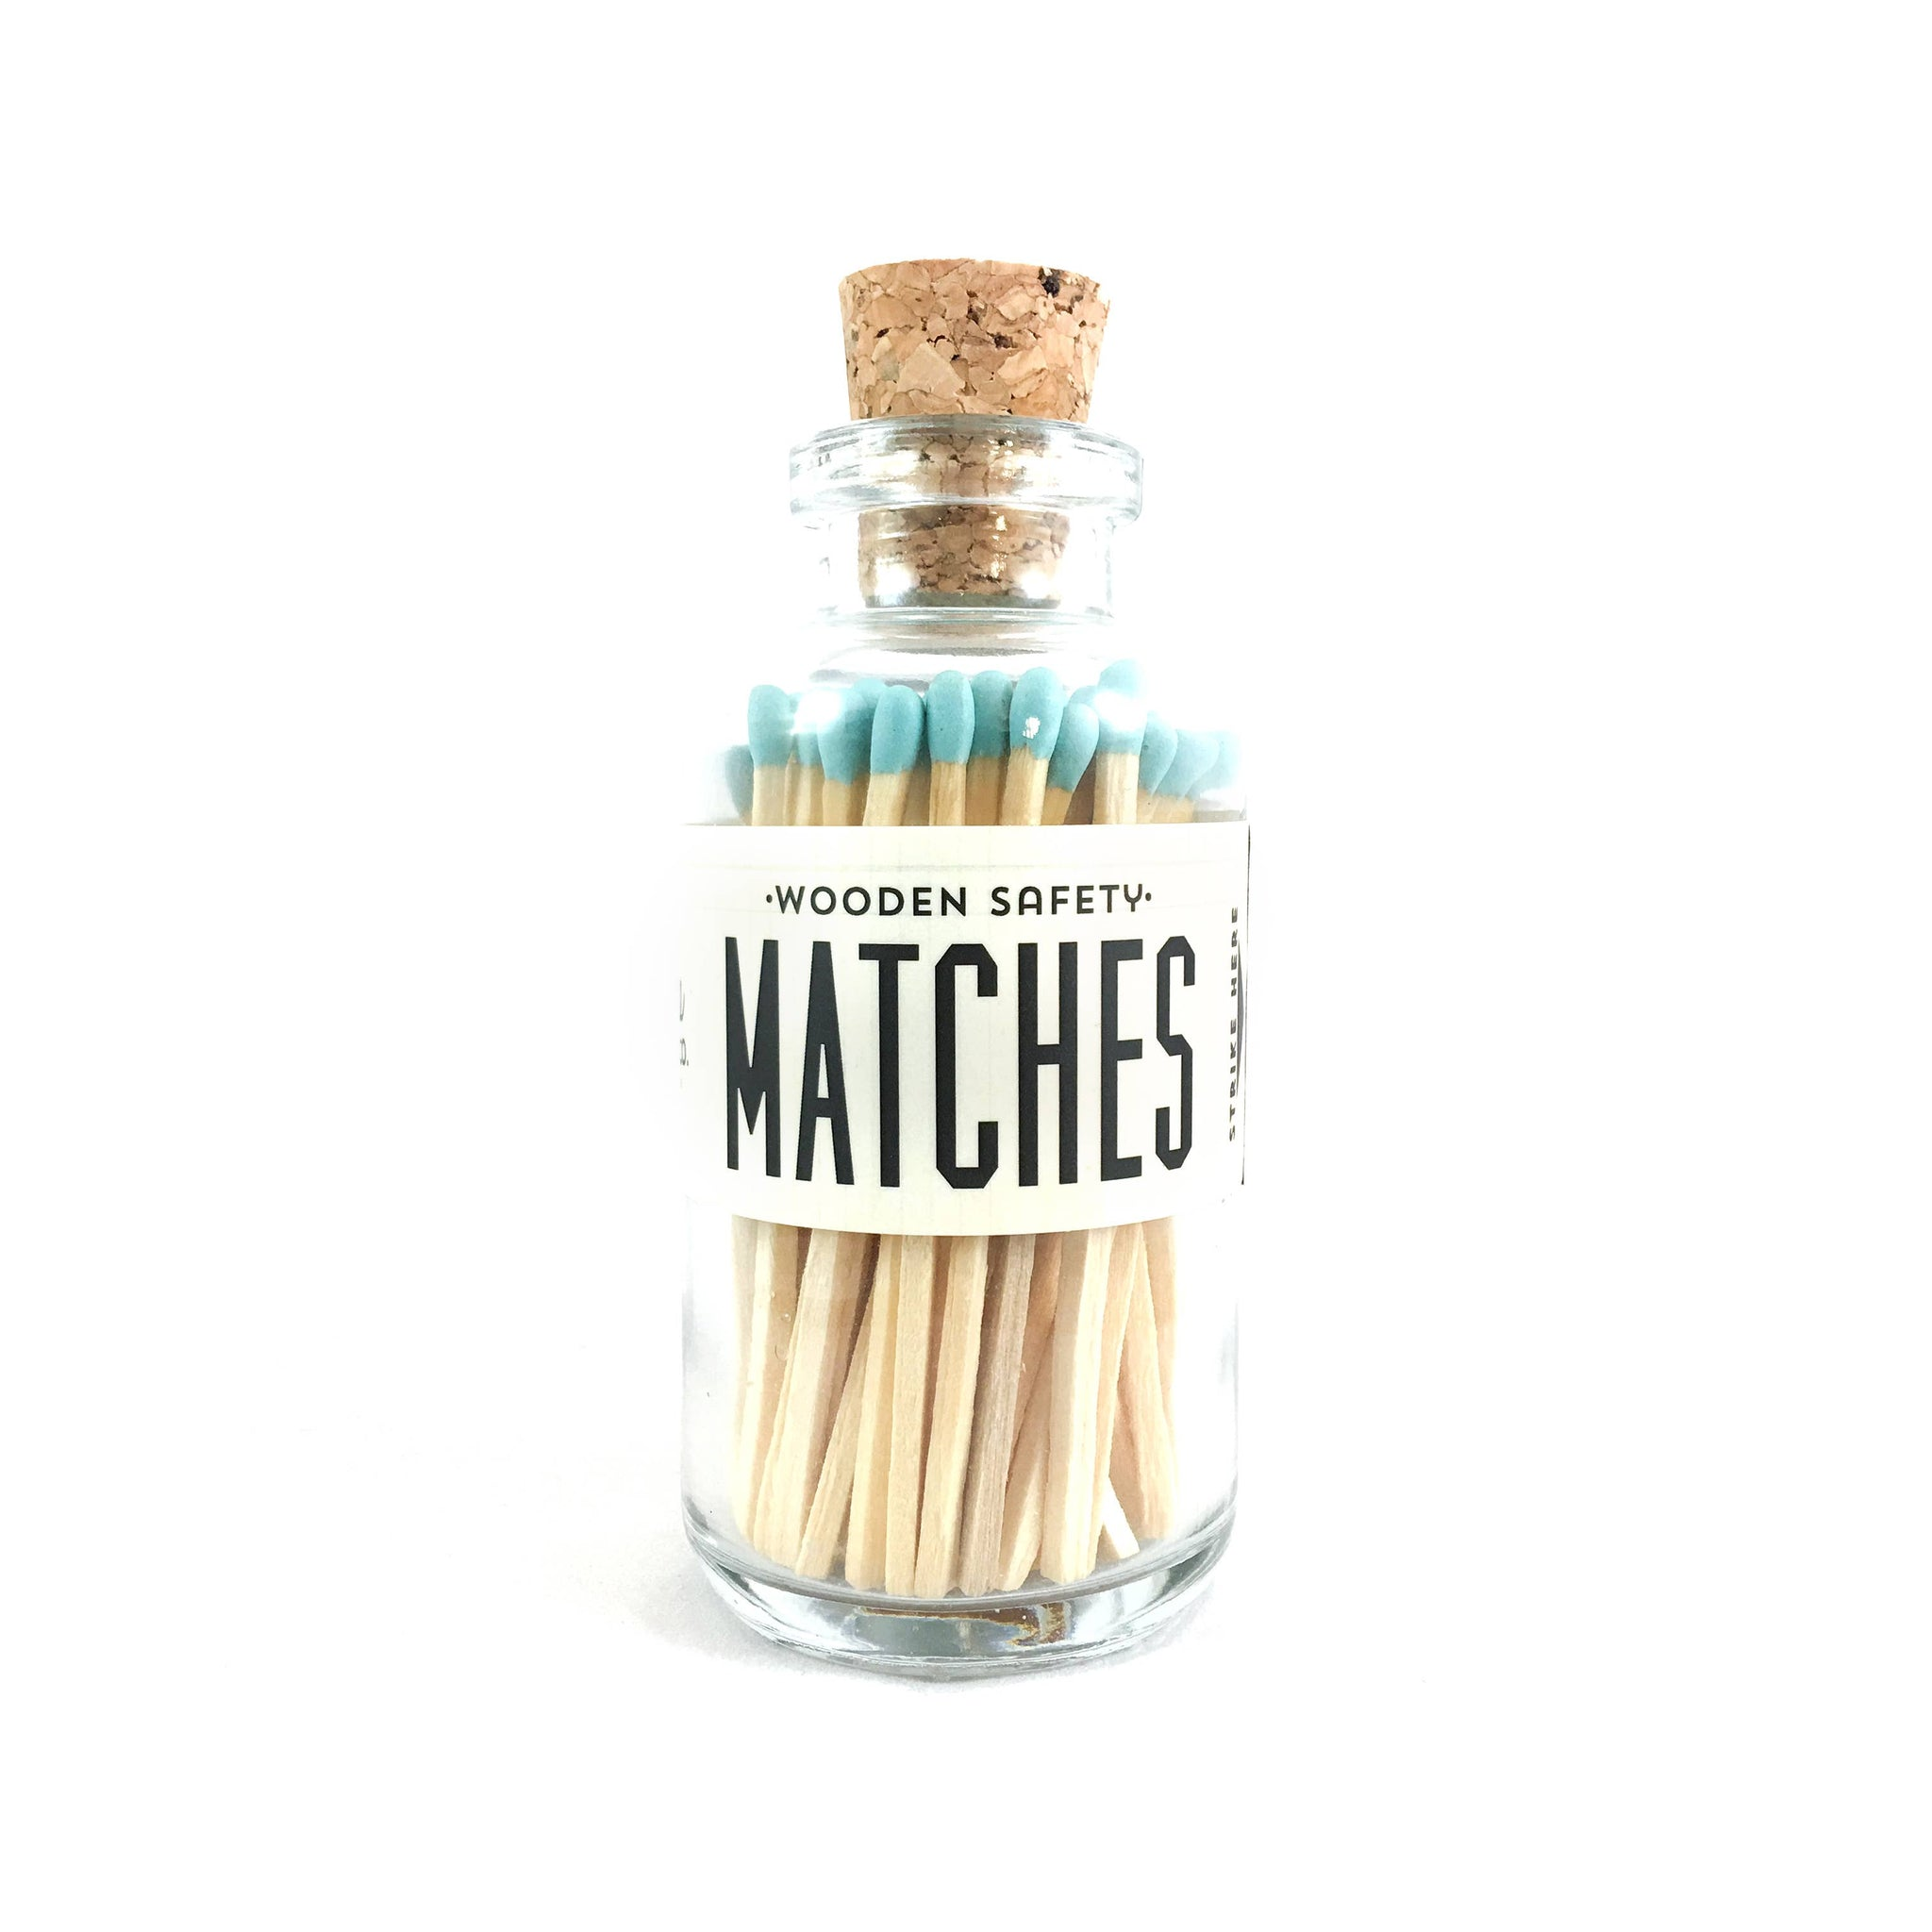 Teal Mini Matches